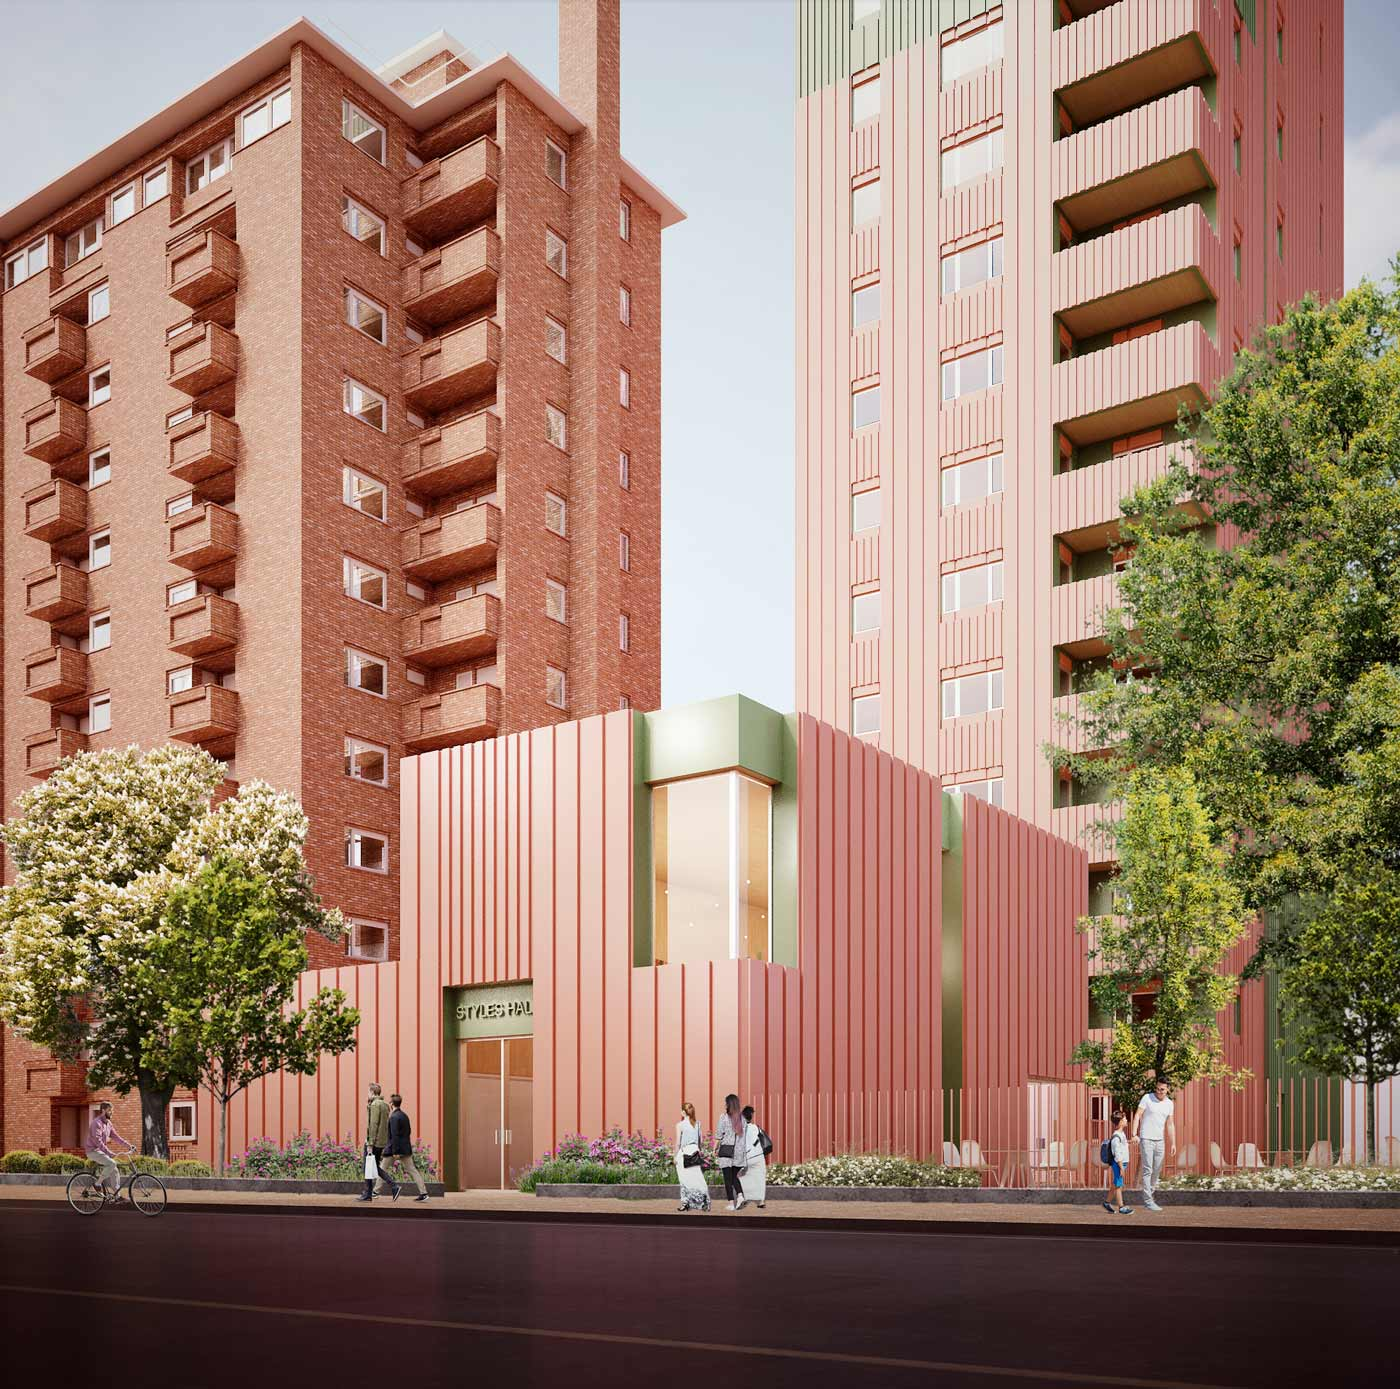 New community-led housing submitted for planning